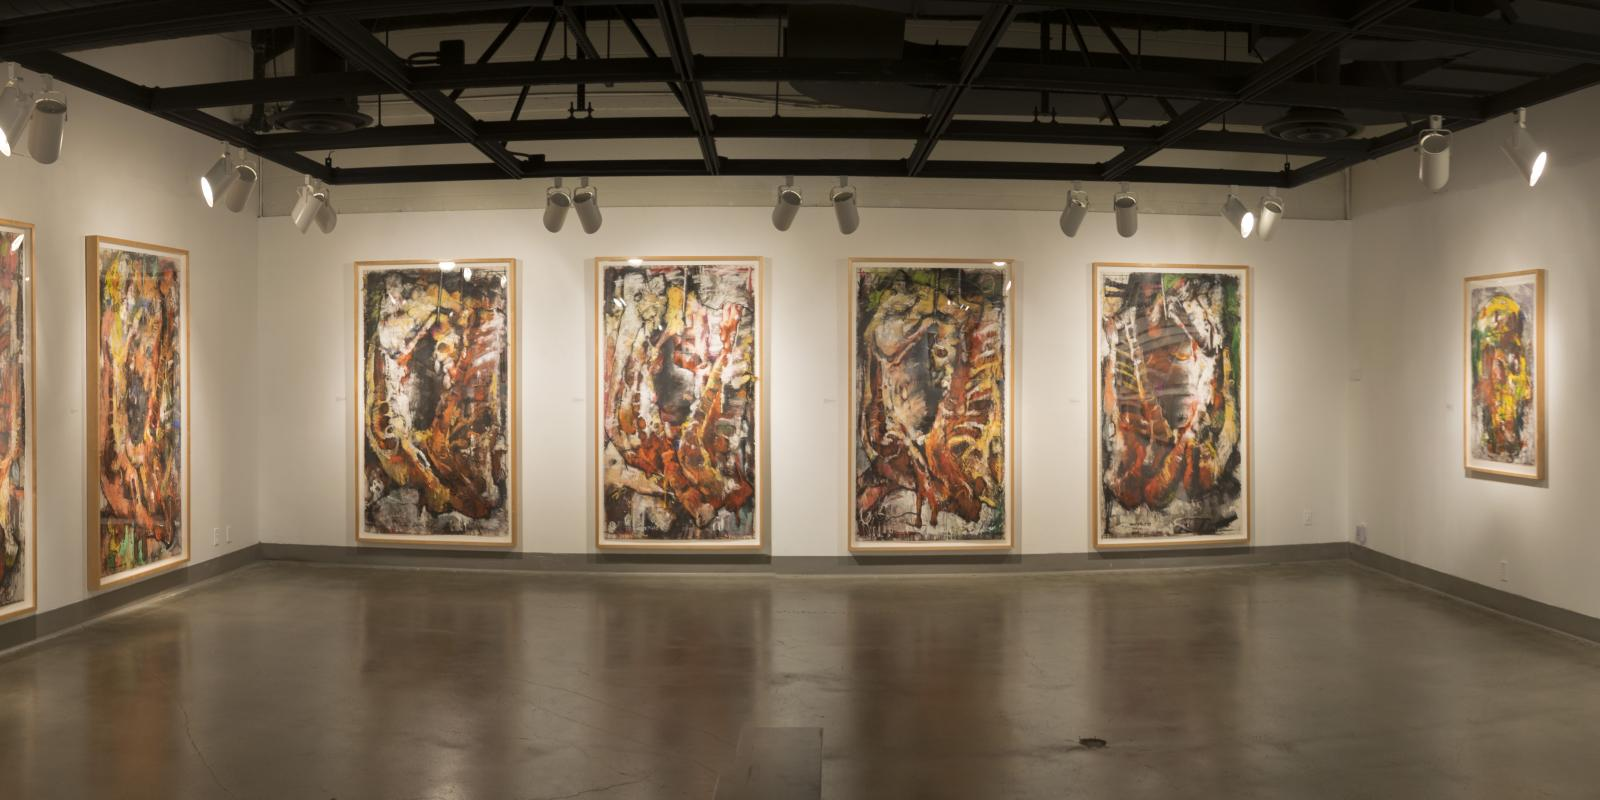 Westside of back gallery, Exhibition: Jim Morphesis: Passion and Presence, Memento and Myth, Nov 18, 2017 - Feb 1, 2018, Curator: Michele Cairella Fillmore, W. Keith & Janet Kellogg Art Gallery, Cal Poly Pomona. [Closer look at the back gallery]